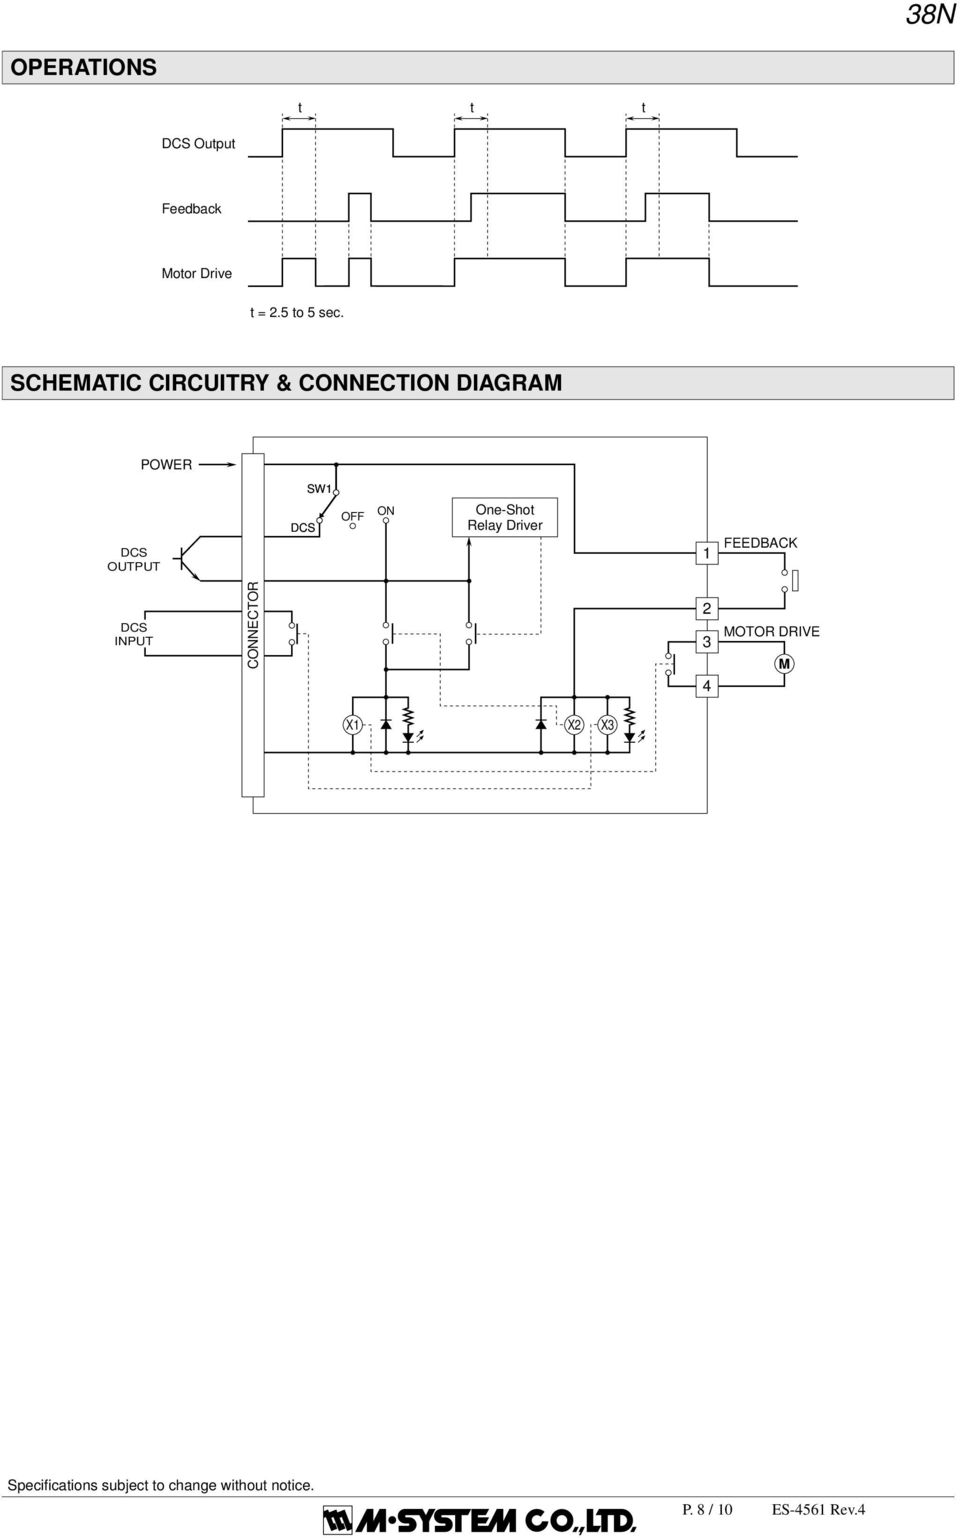 SCHEMATIC CIRCUITRY & CNECTI DIAGRAM POWER OFF One-Shot